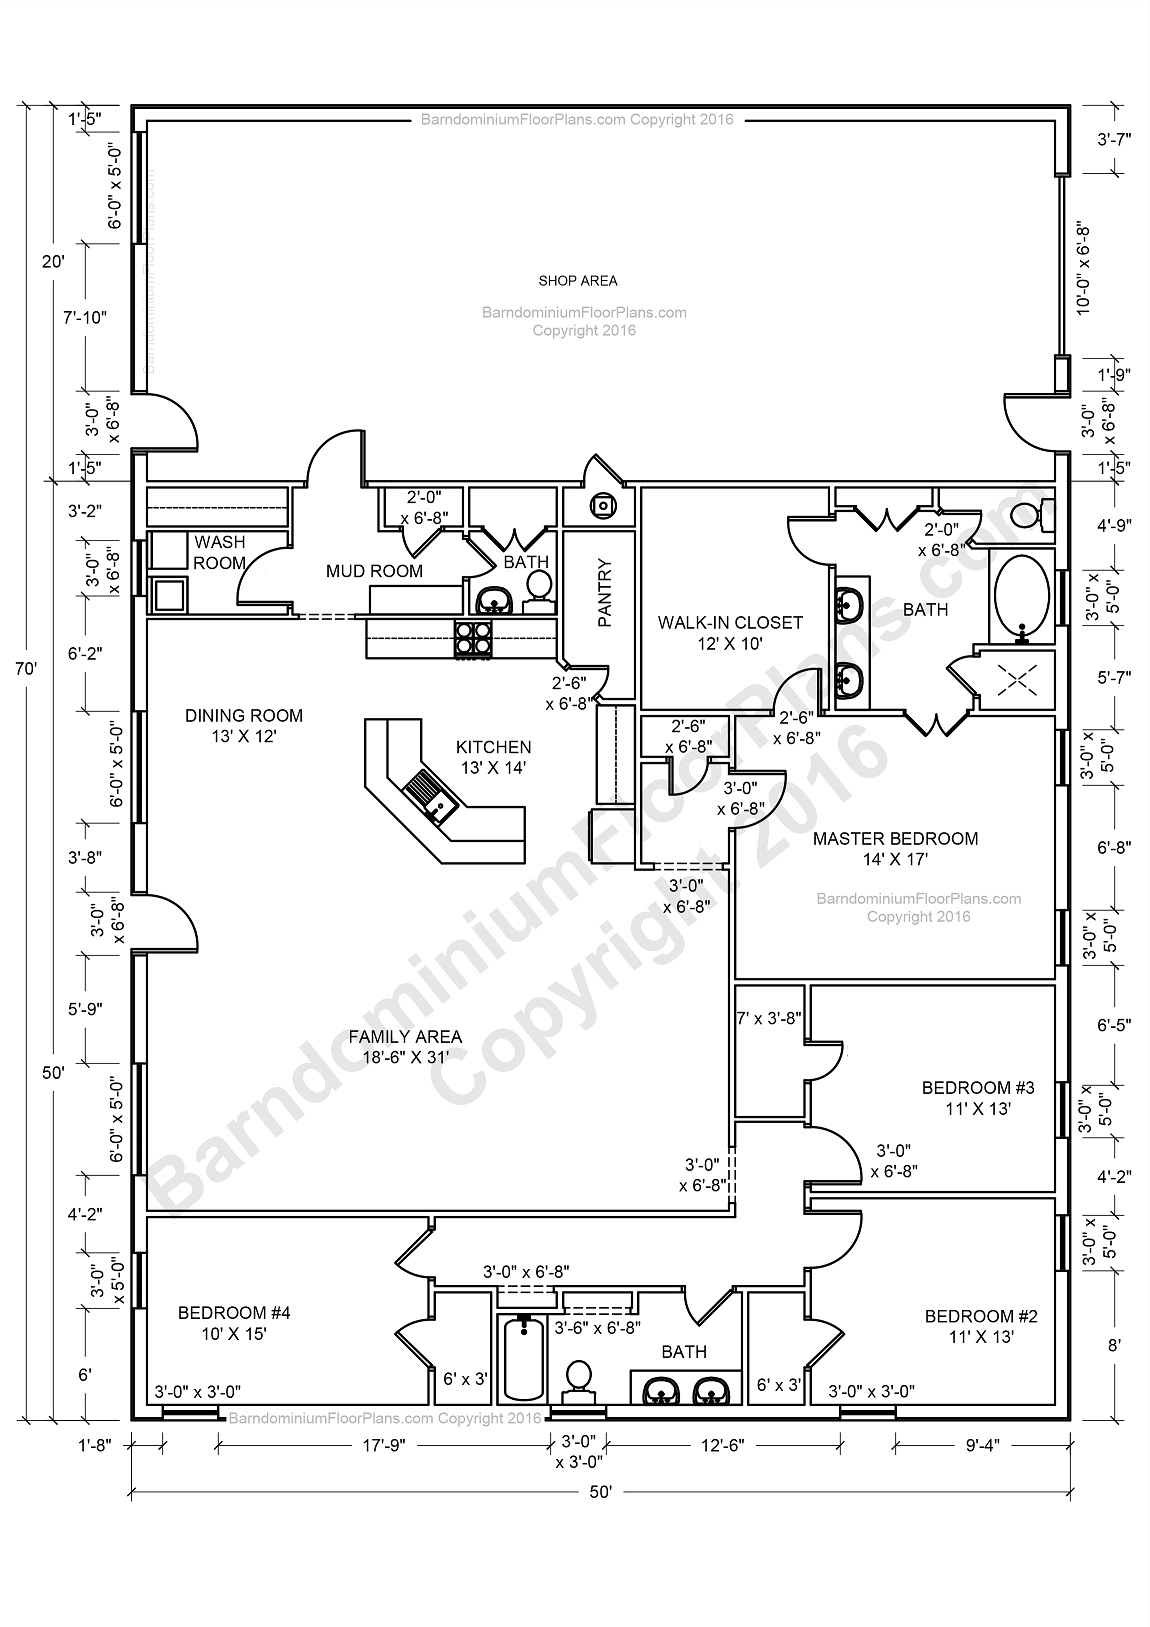 Barndominium floor plans barndominium floor plans 1 800 for 30x40 barndominium floor plans